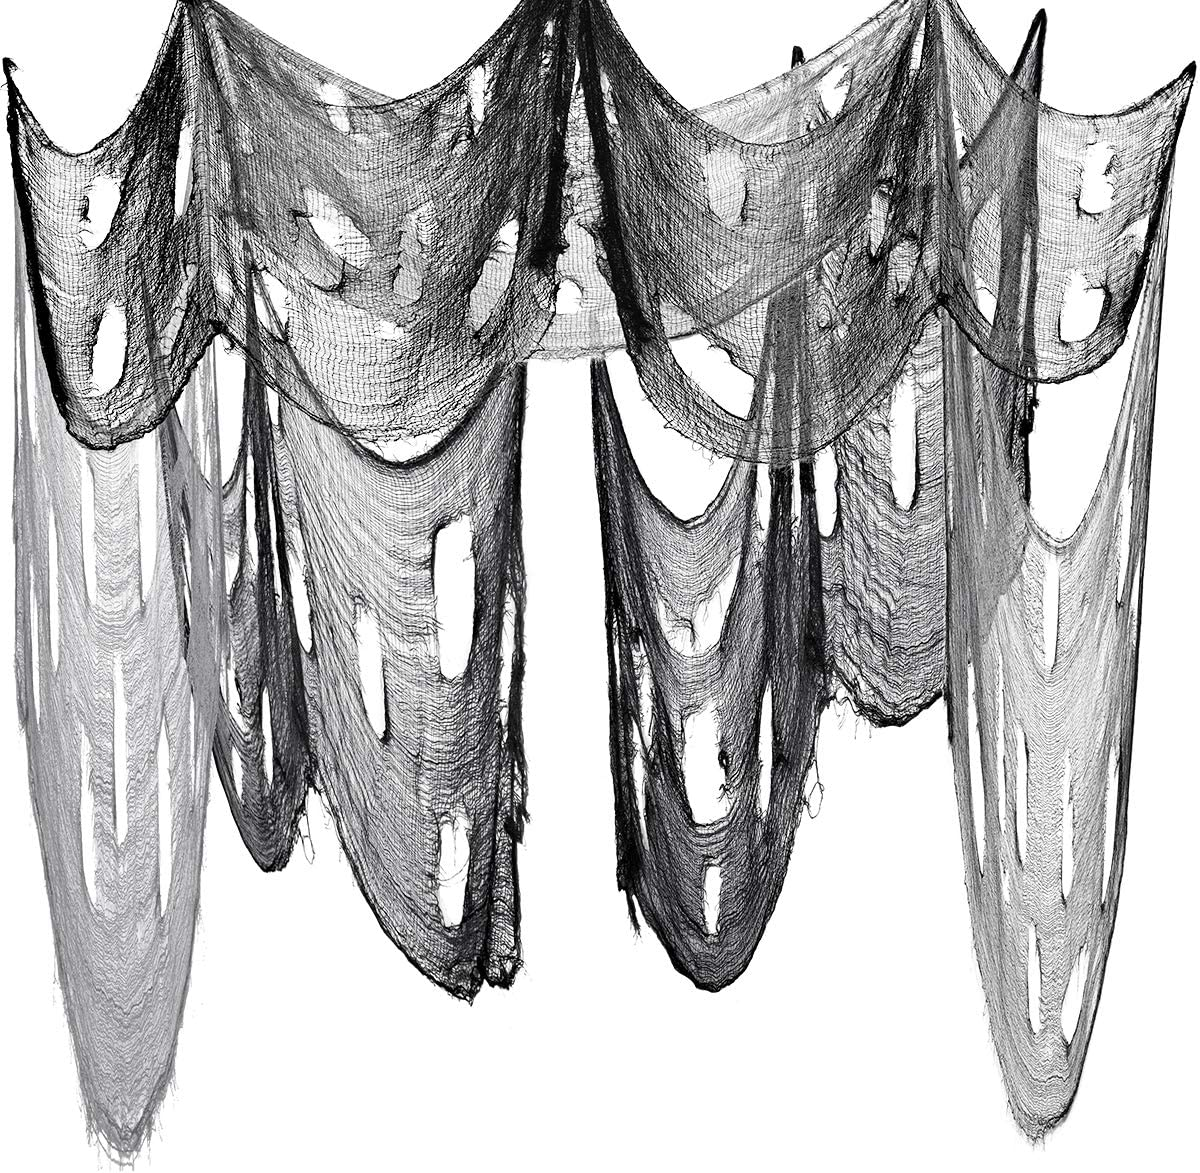 Halloween Creepy Cloth, Spooky Fabric Cloth for Halloween Party, Doorway Outdoors Decoration 2PCS